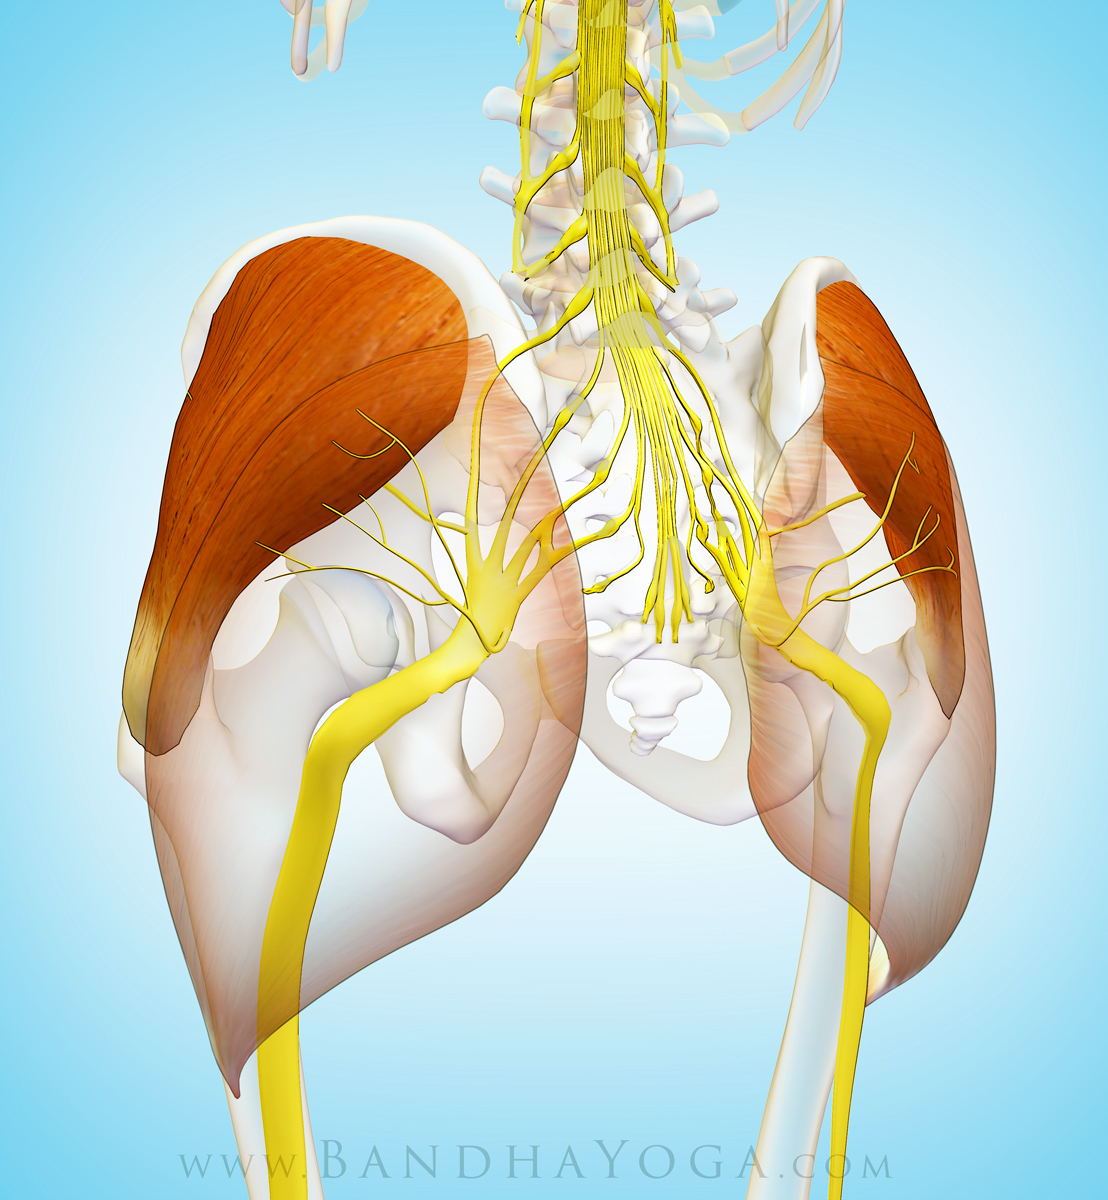 Yoga Anatomy: The Gluteus Medius Muscle in Yoga | YogaUOnline